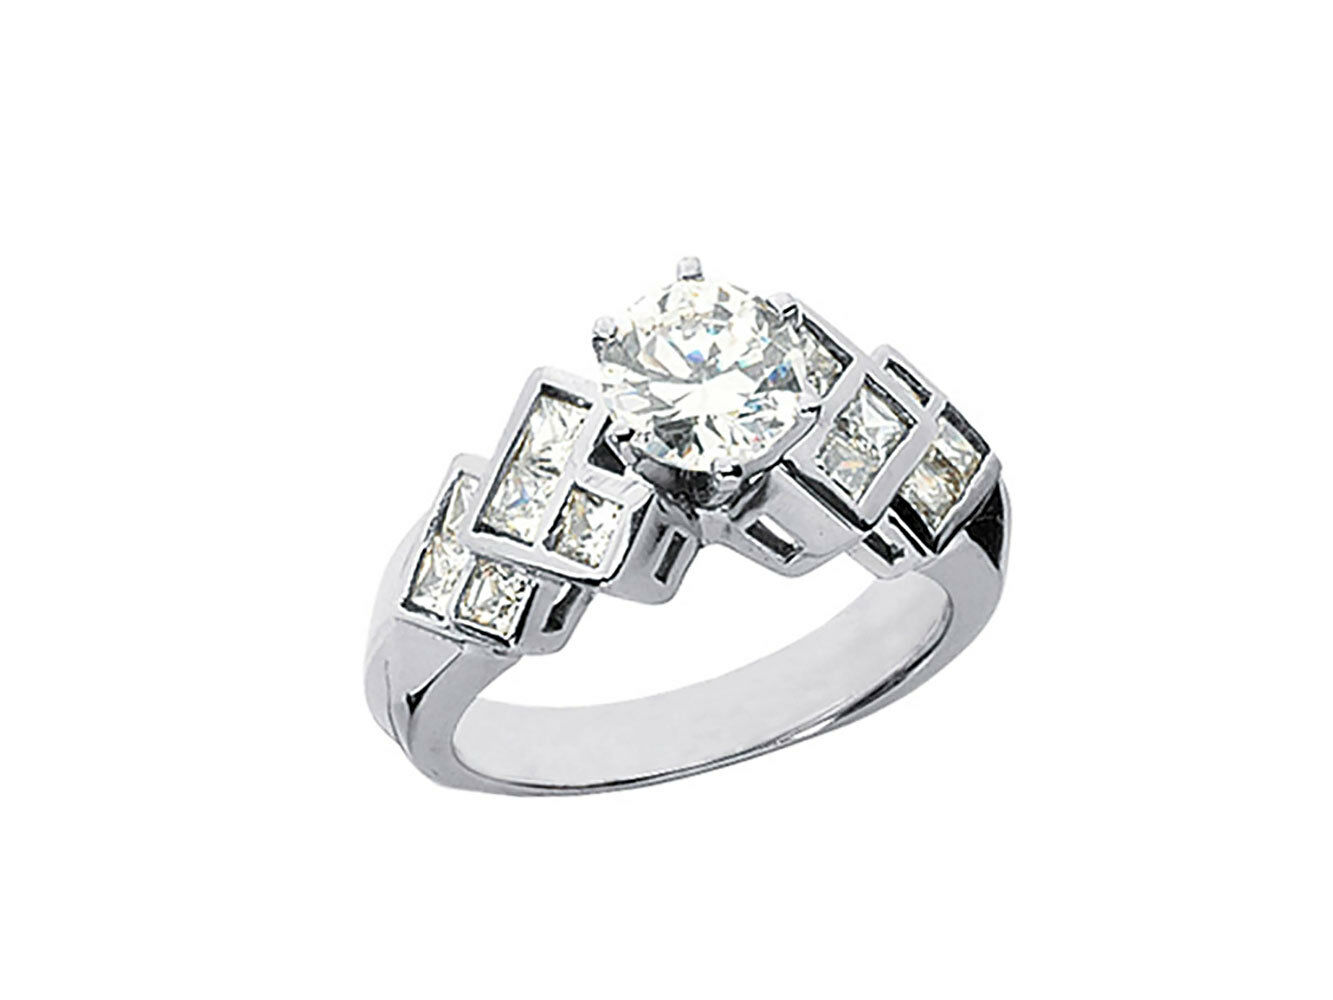 1.25Ct Round Princess Cut Diamond Engagement Ring Layered Accents 10k gold GH I1